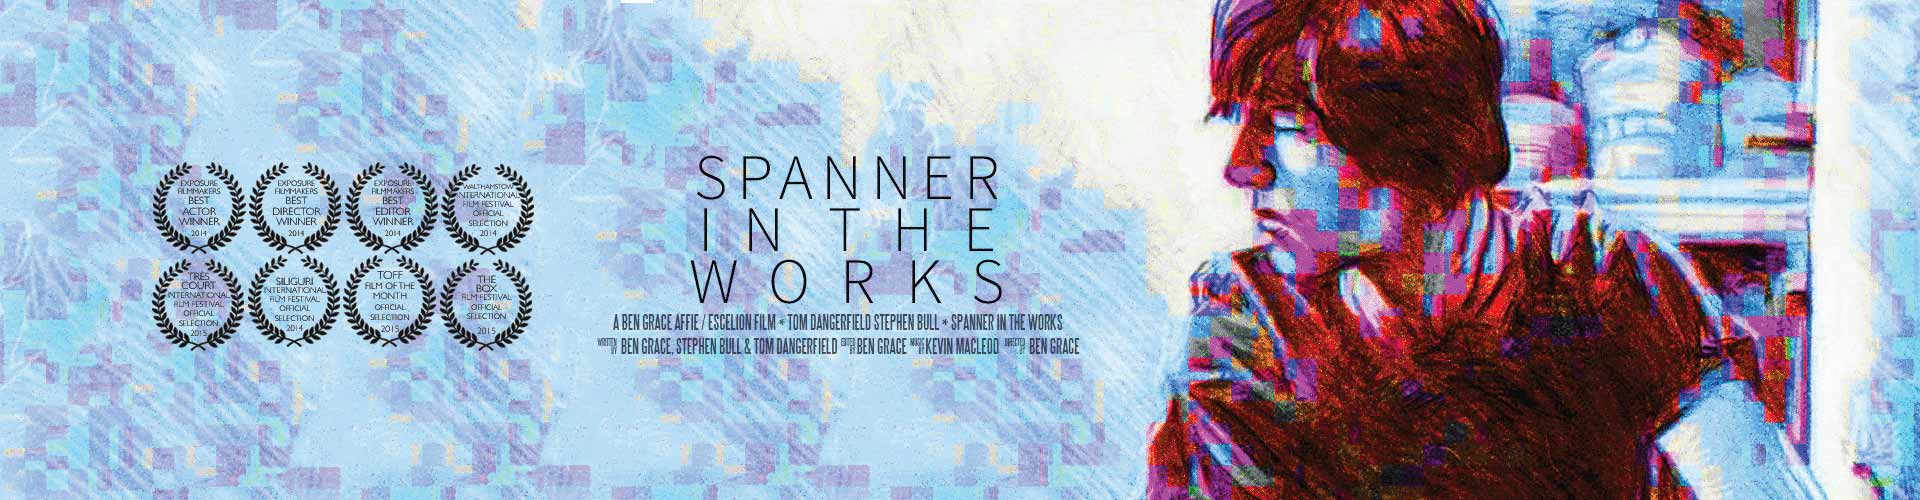 Spanner in the Works| Ben Grace Films | BenGrace.co.uk